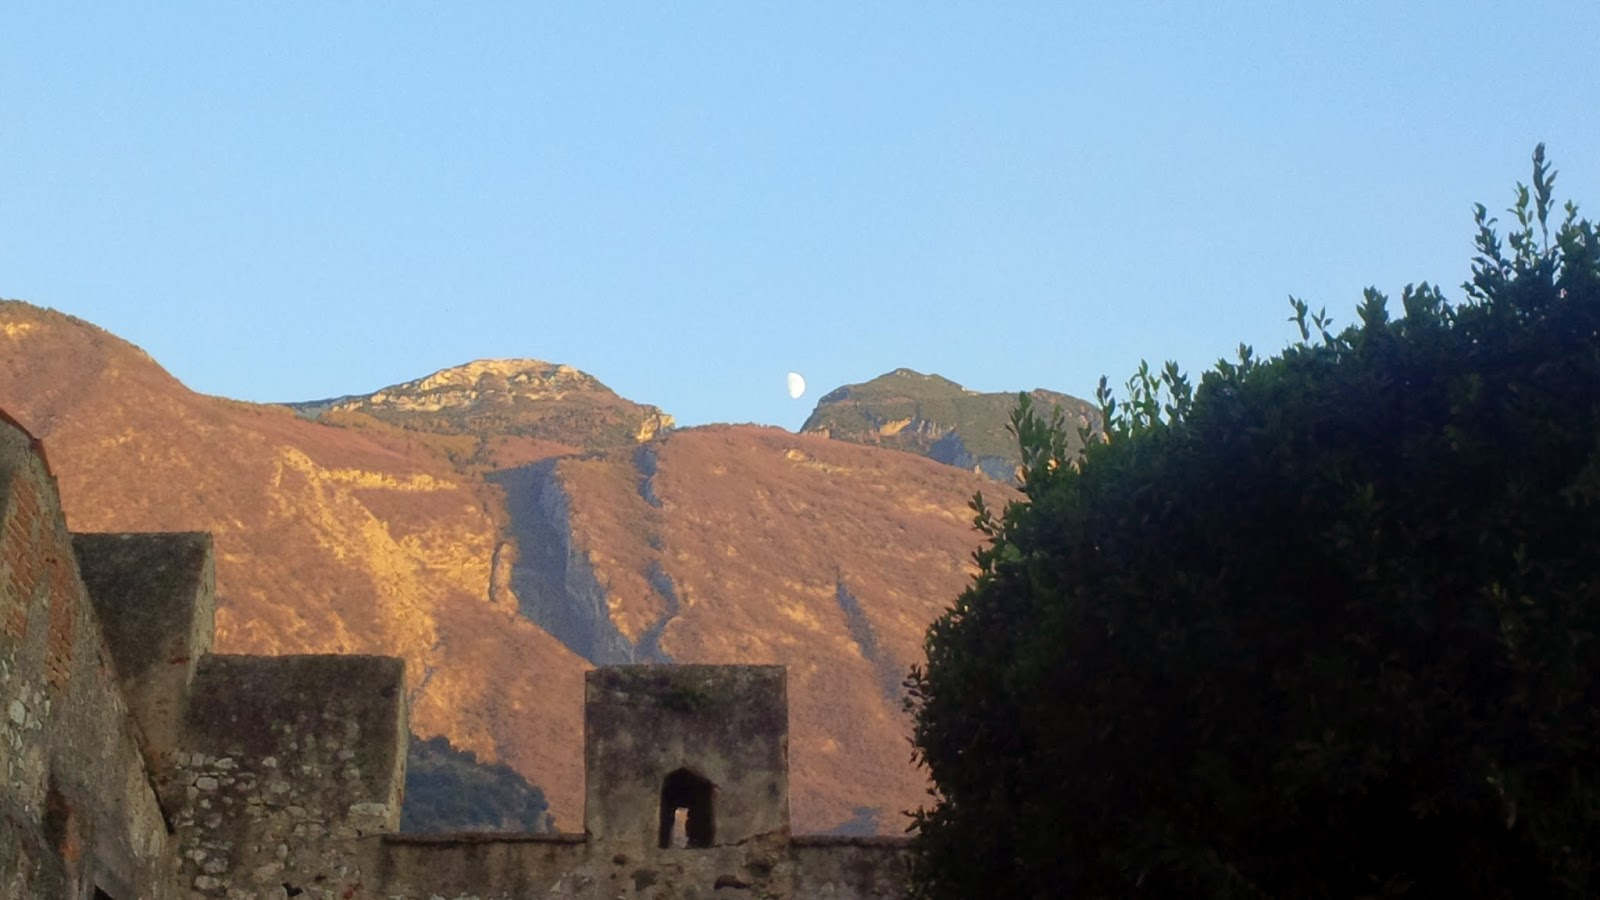 Huge half-moon hangs over Malcesine